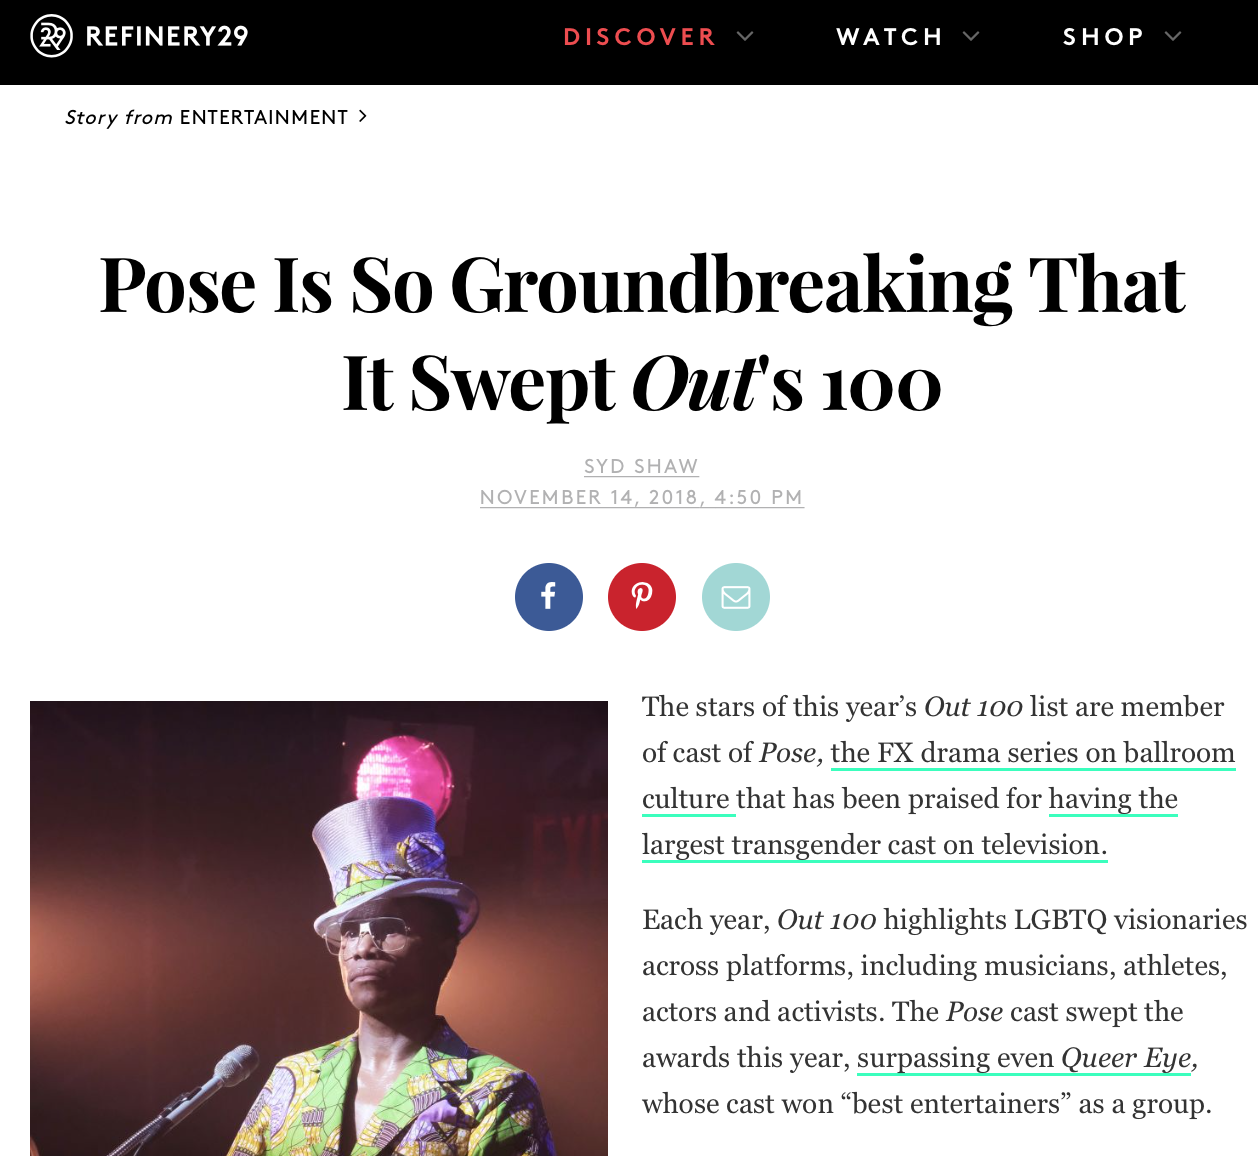 """REFINERY 29    """"Each year,   the Out100   highlights LGBTQ visionaries across platforms, including musicians, athletes, actors and activists. The  Pose  cast swept the awards this year, surpassing even  Queer Eye,  whose cast won 'best entertainers' as a group."""""""